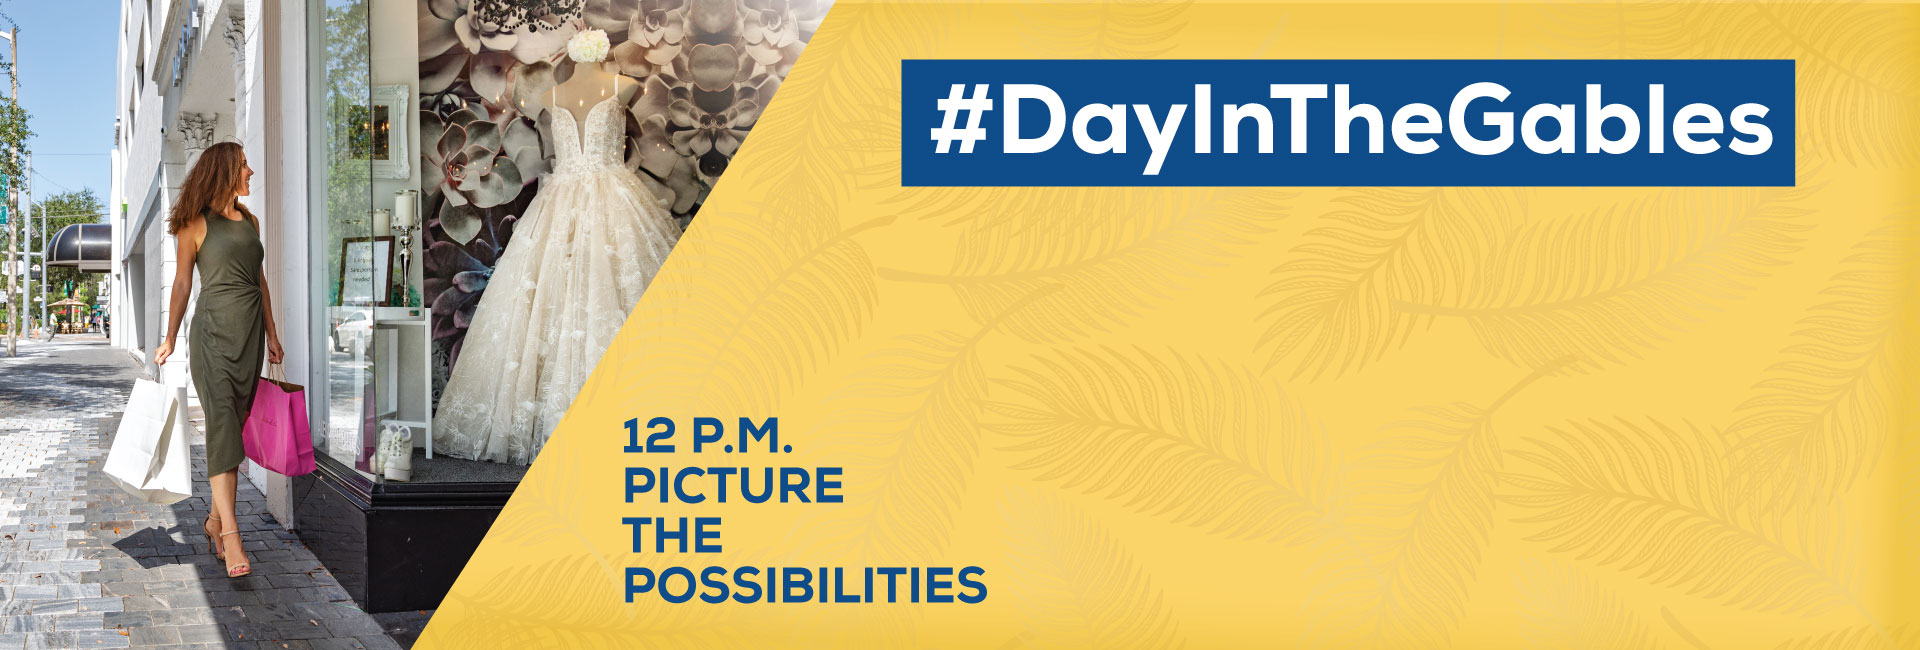 #DayInTheGables. 12 pm. Picture the Possibilities